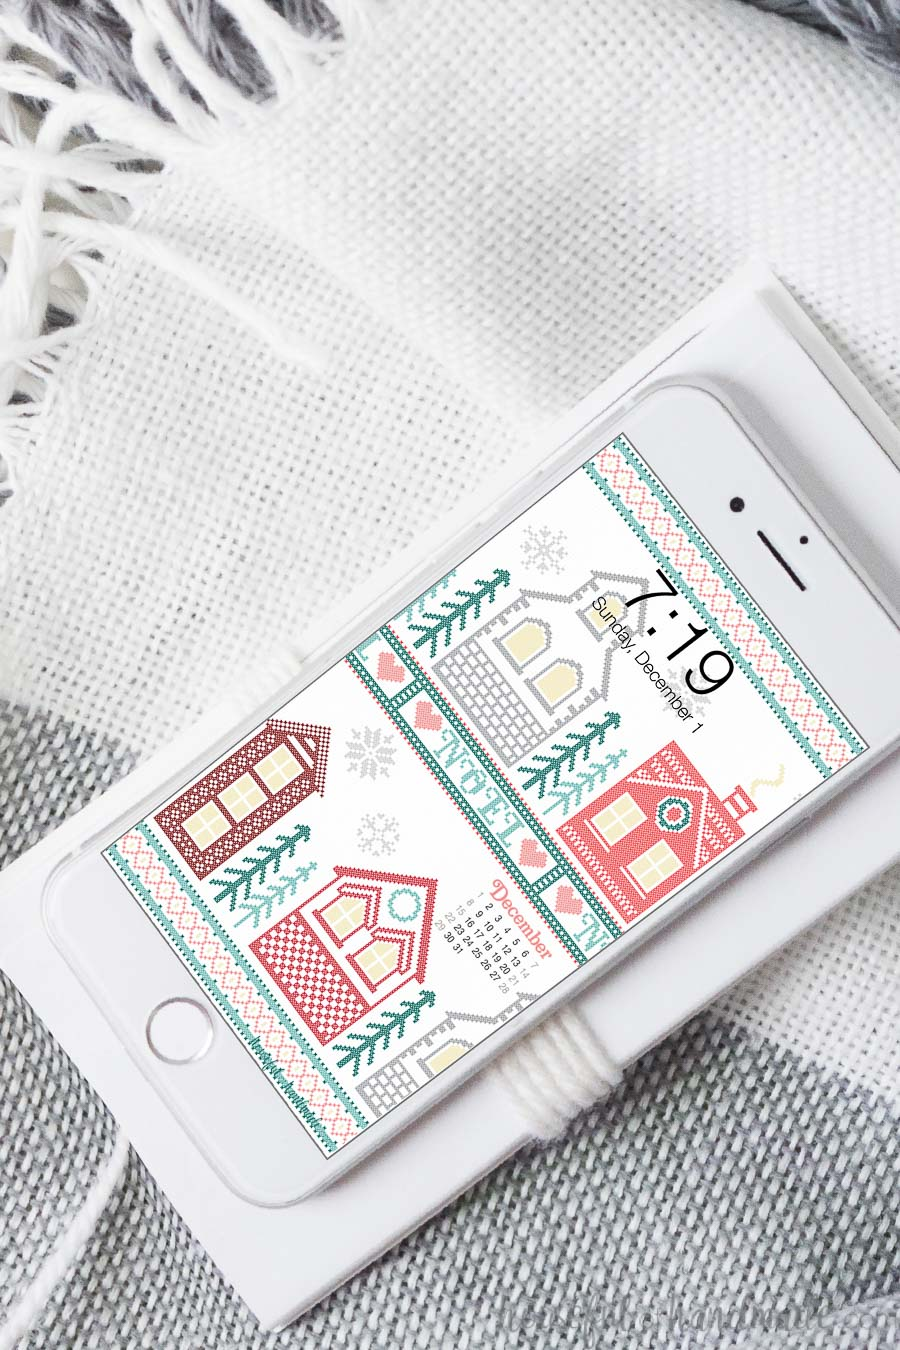 White iPhone showing the Christmas cross-stitch village design on the background.